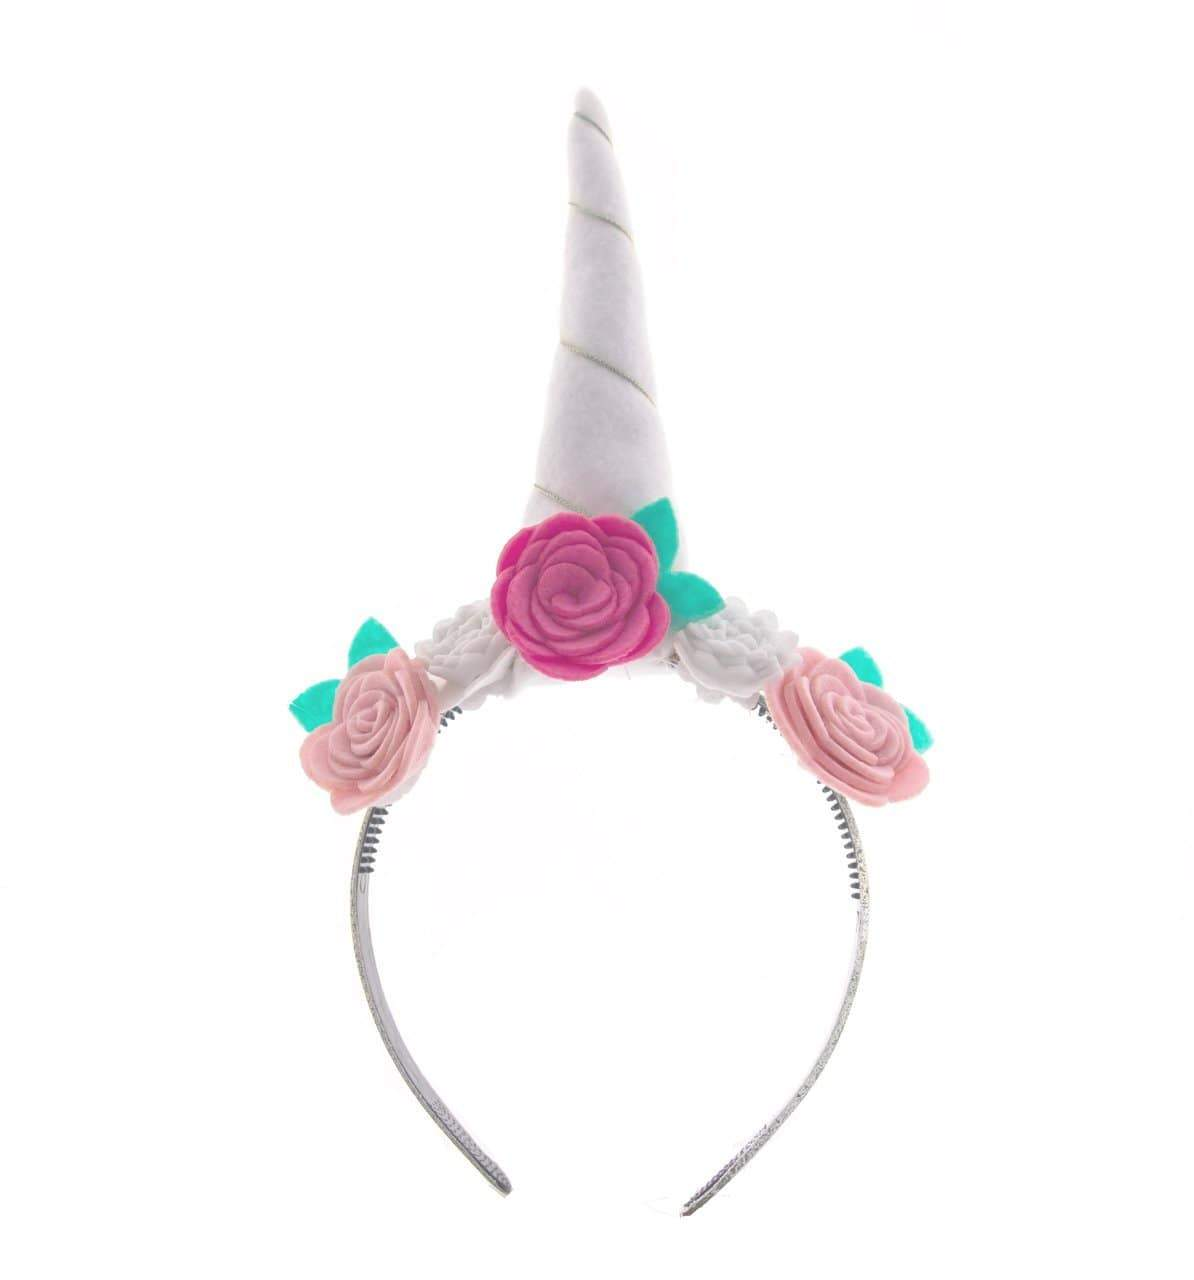 Huckleberry DIY Craft Huckleberry Unicorn Headband